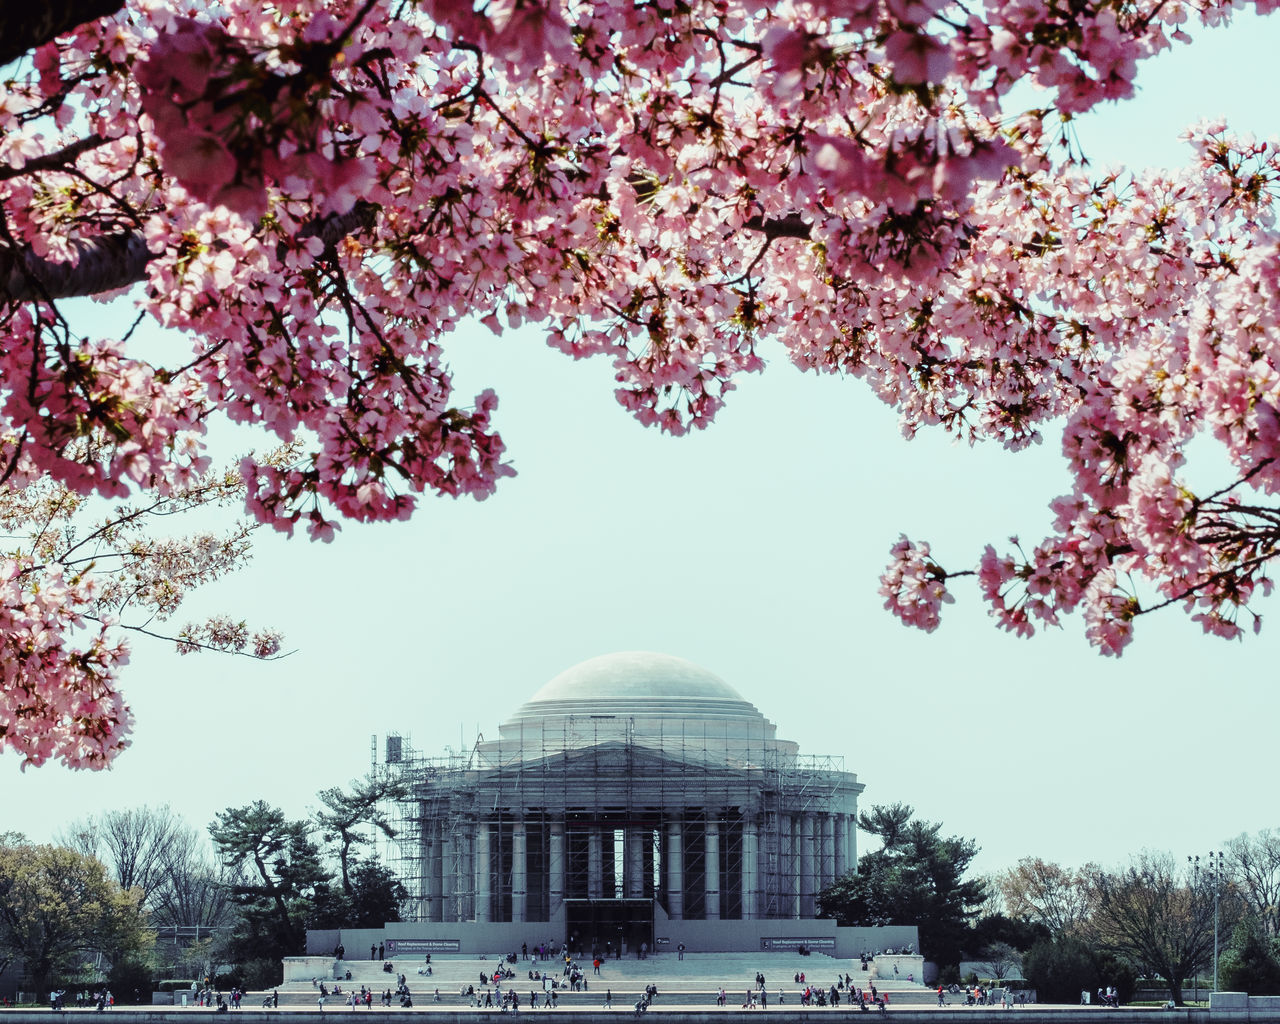 VIEW OF CHERRY BLOSSOM TREE